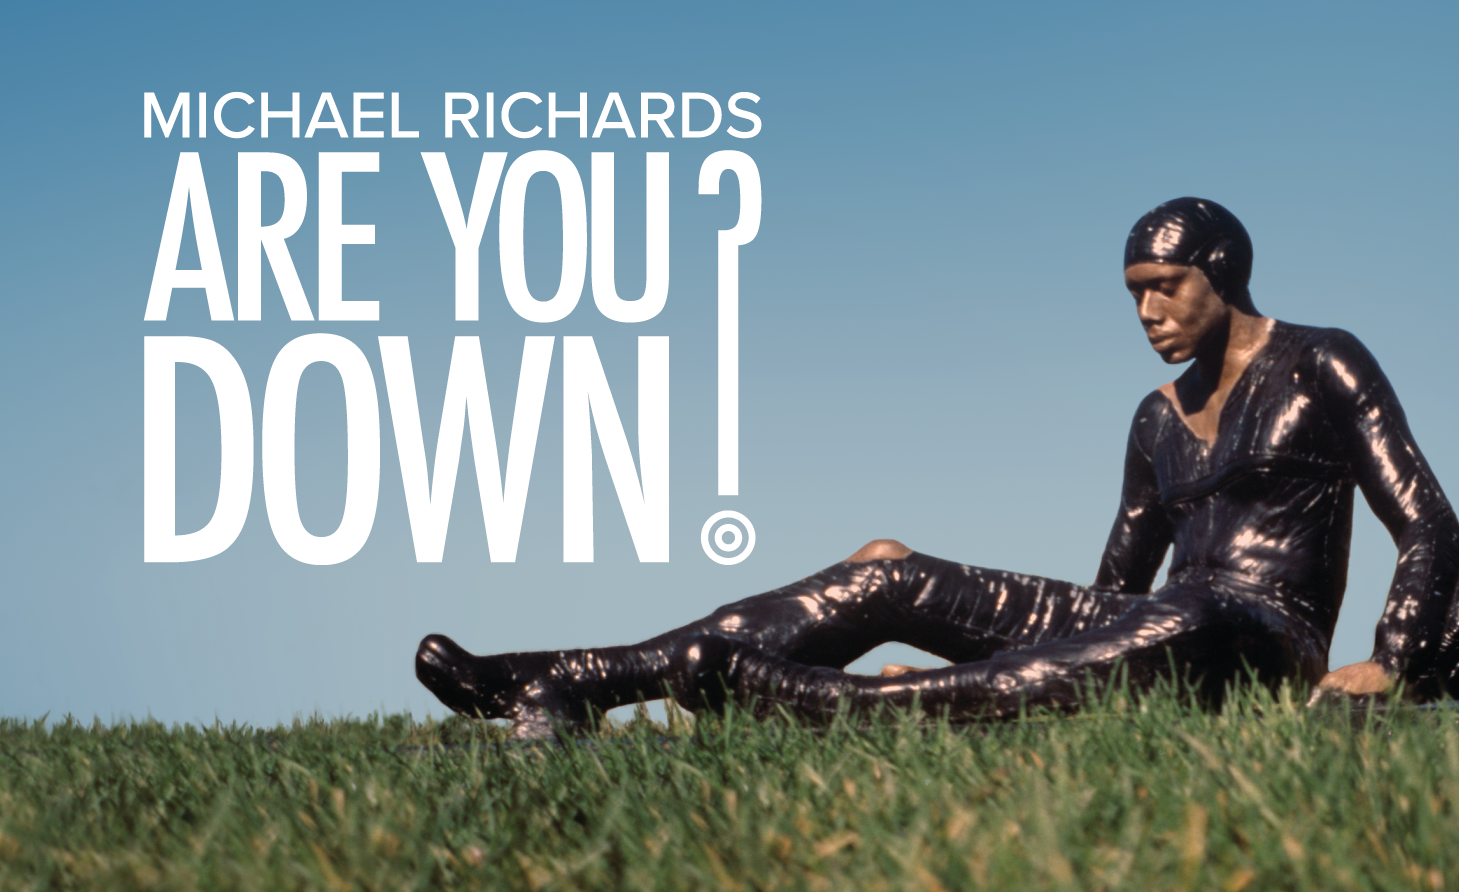 Michael richards: are you down?